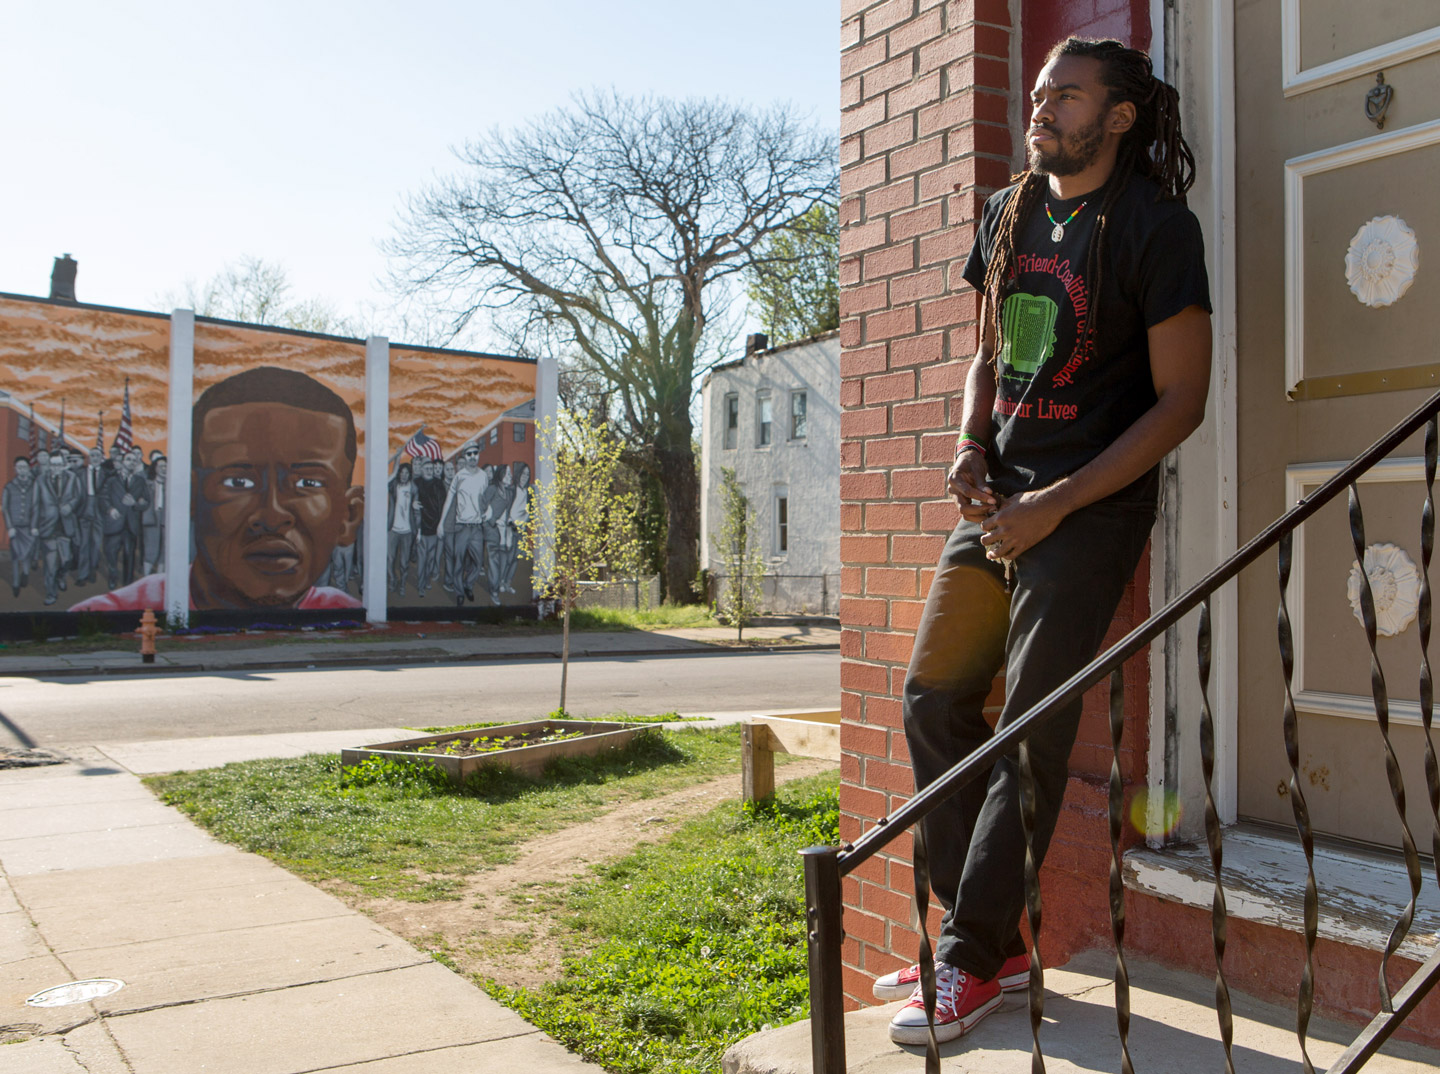 Attorney and activist Taalib Saber poses for a photo outside a house that is across the street from where Freddie Gray, who died while in police custody just over one year ago, was picked up by police in Baltimore, Maryland, April 23, 2016. Saber is using the home, which he found vacant, for children's community activities. (photo by Allison Shelley)